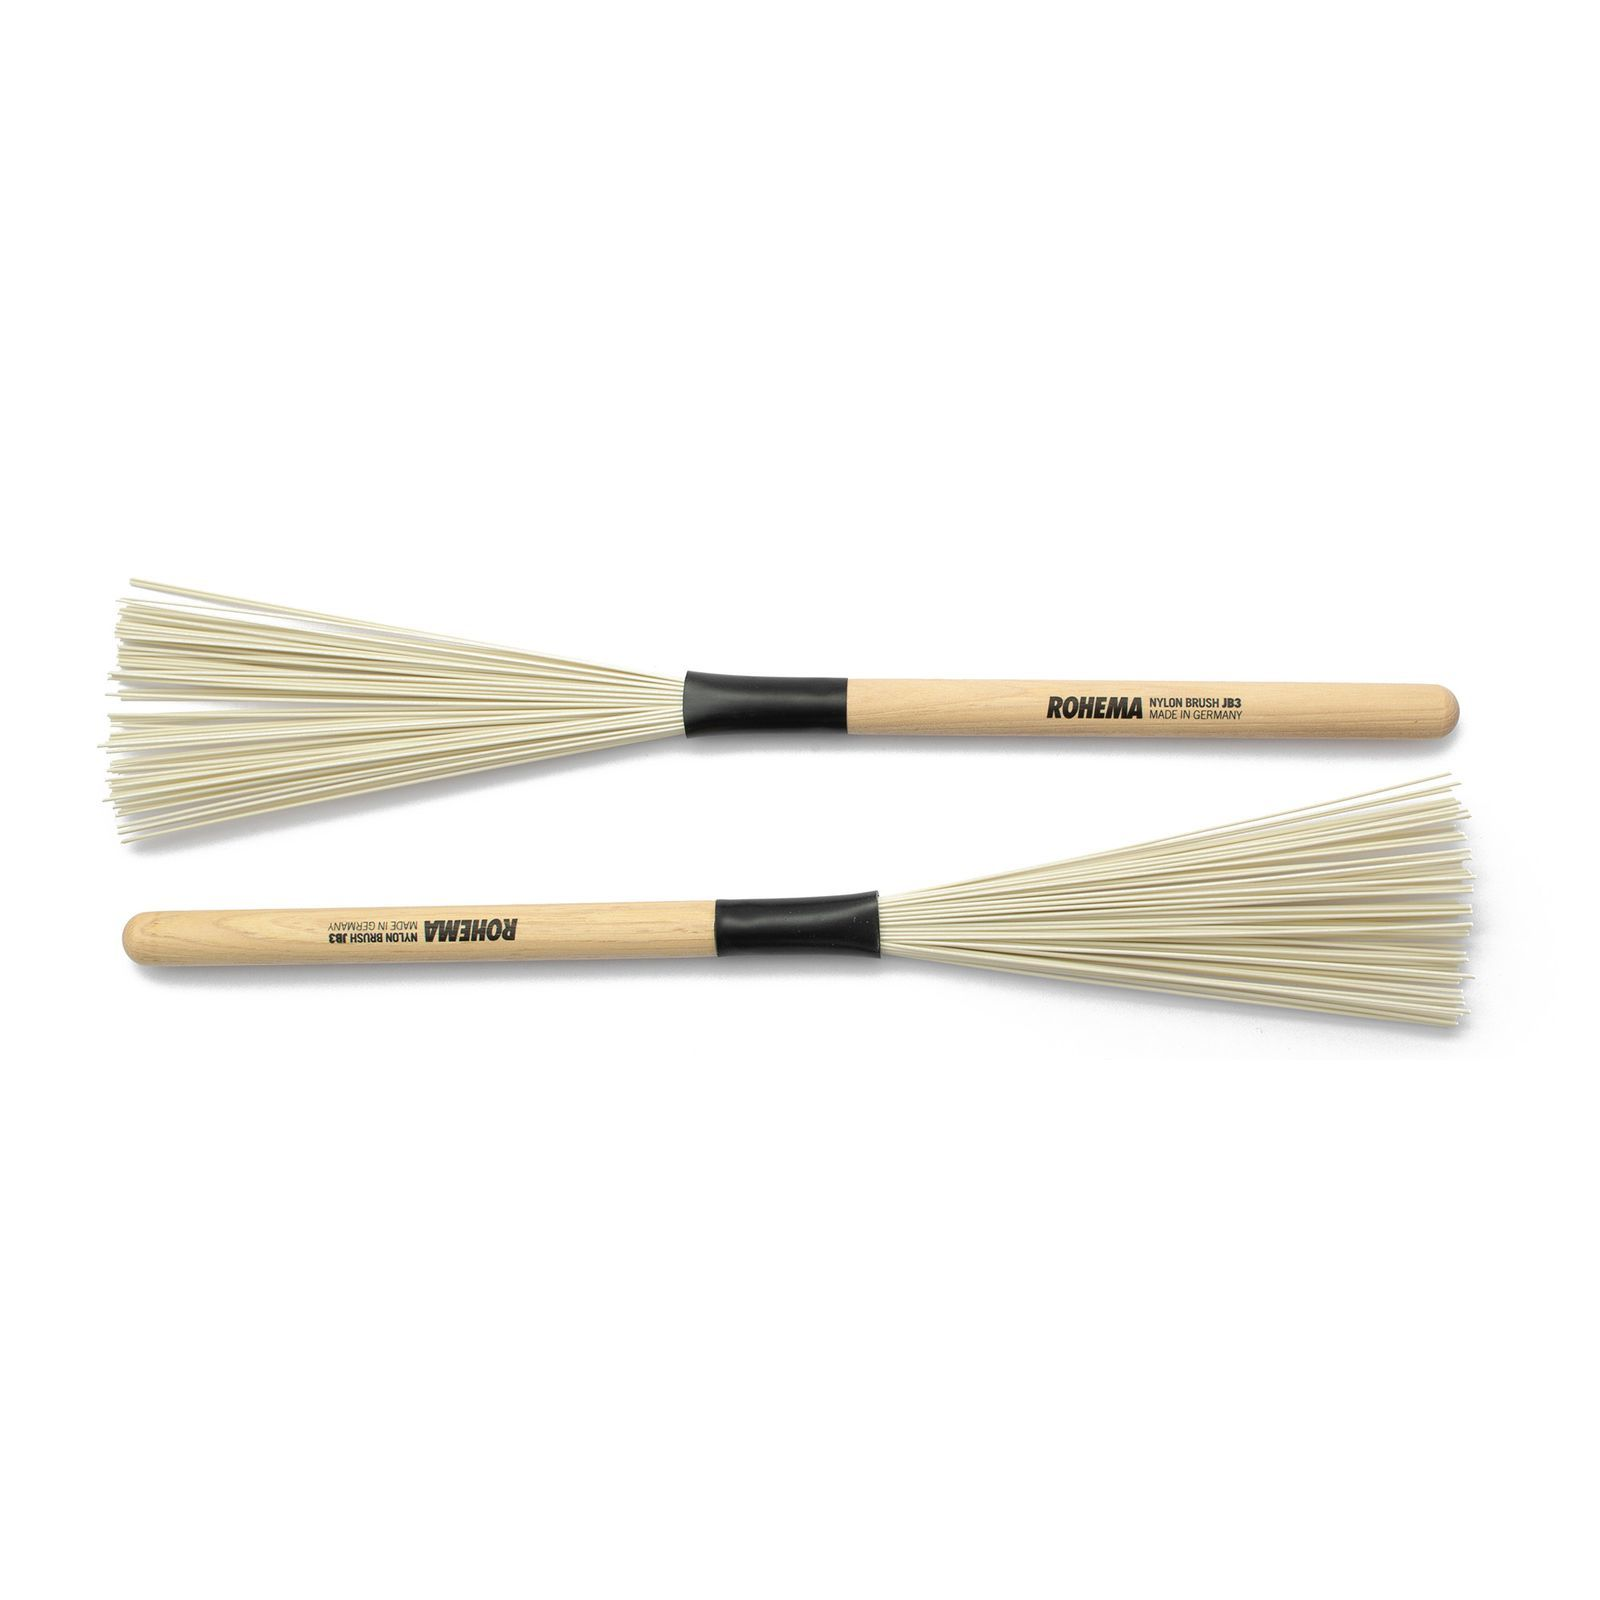 Rohema JB 3 Brush - Nylon Bristles - Wood Handle Produktbillede